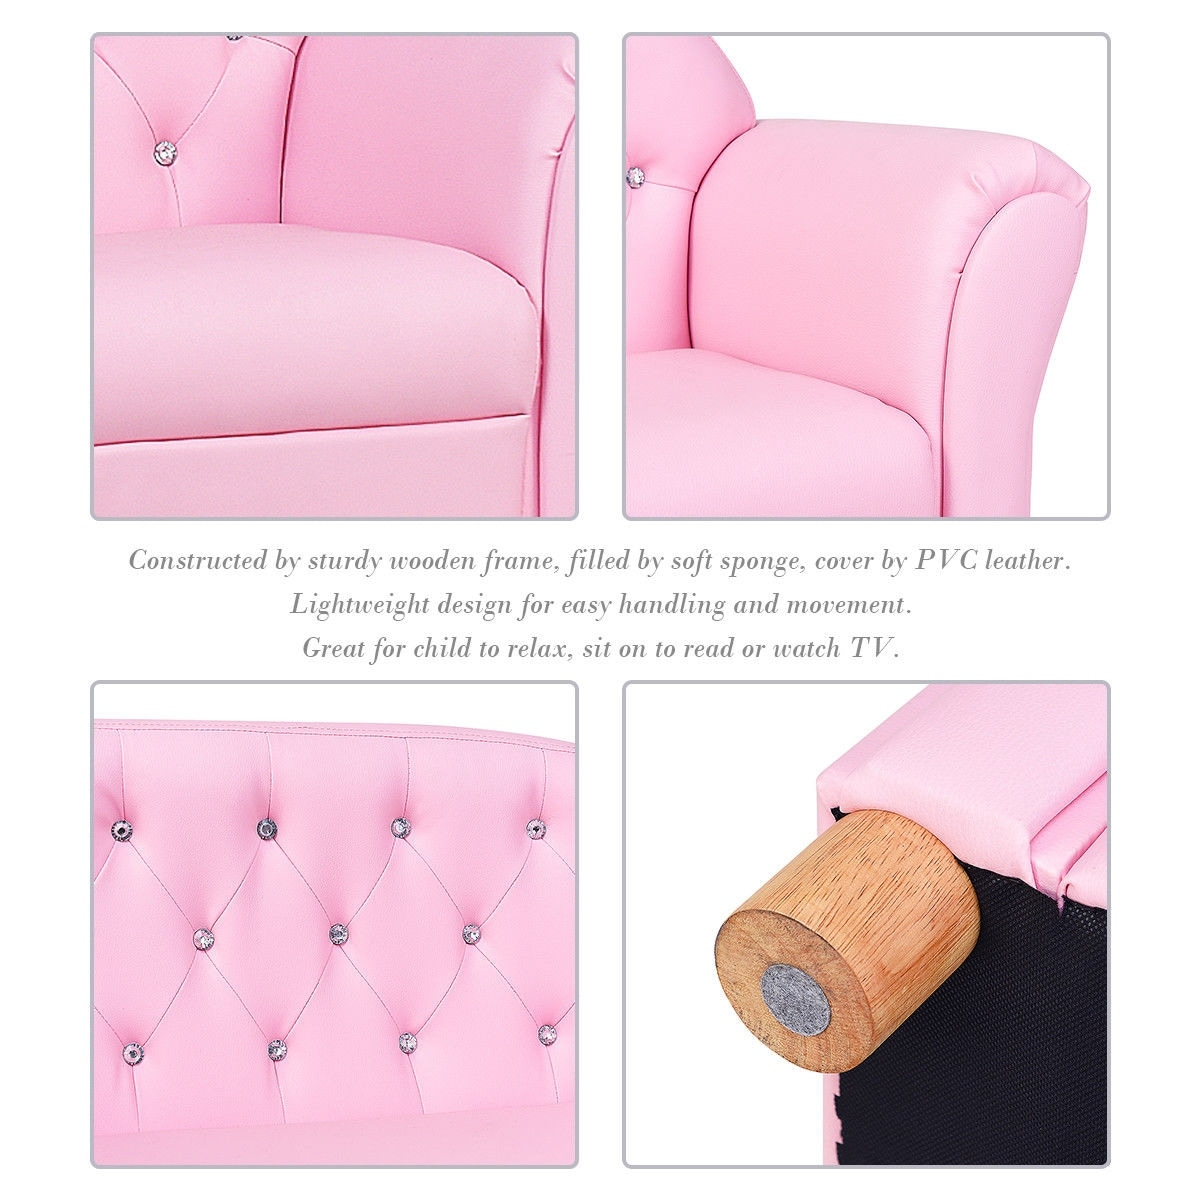 Shop Gymax Kids Sofa Princess Armrest Chair Lounge Couch Loveseat Children  Toddler Gift   Free Shipping Today   Overstock.com   22704682